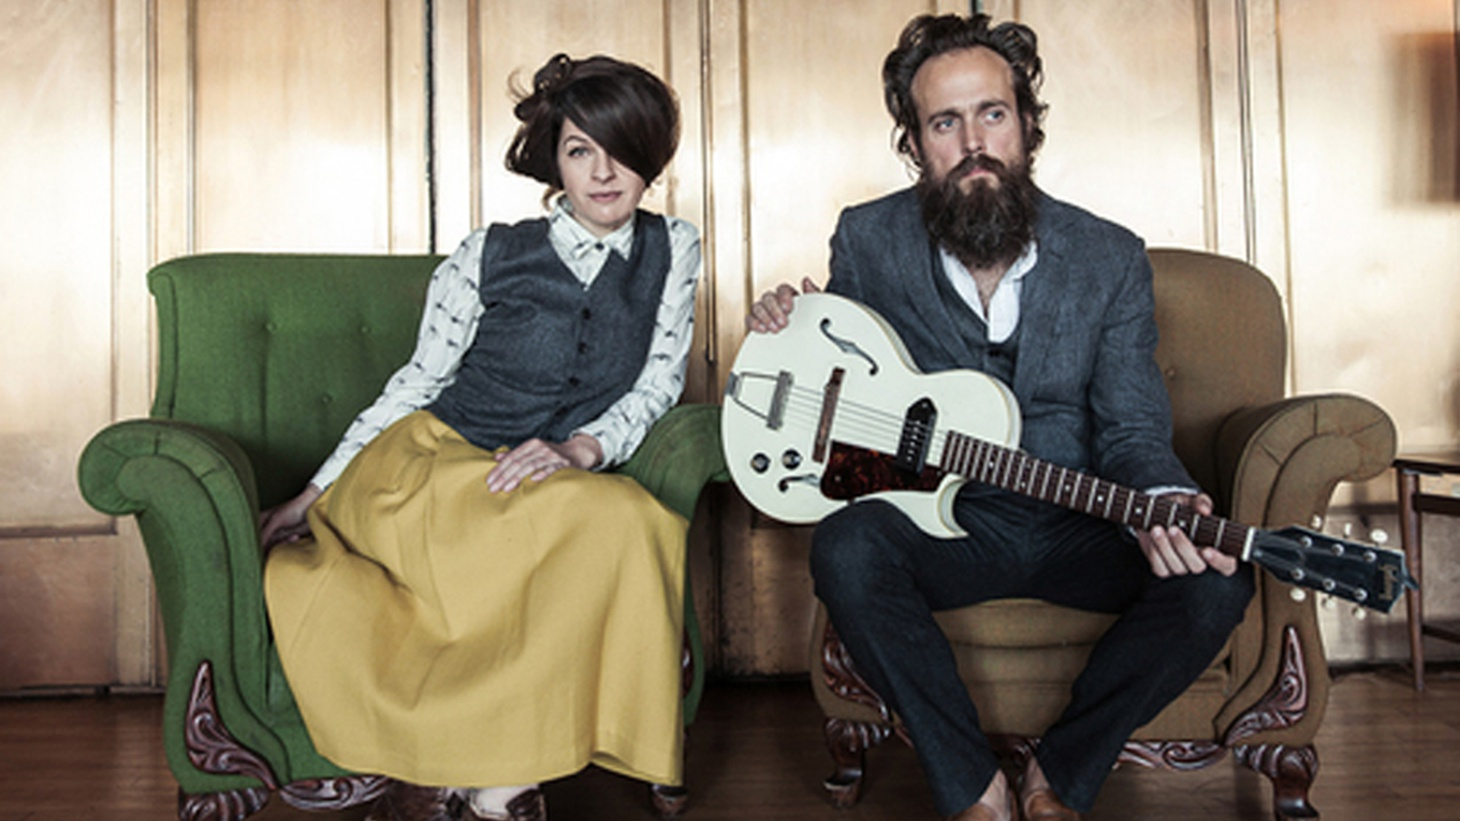 Longtime KCRW favorites Sam Beam and Jesca Hoop team up for this MBE visit. Love -- in all its forms -- takes center stage in the songs from their new collaborative album.